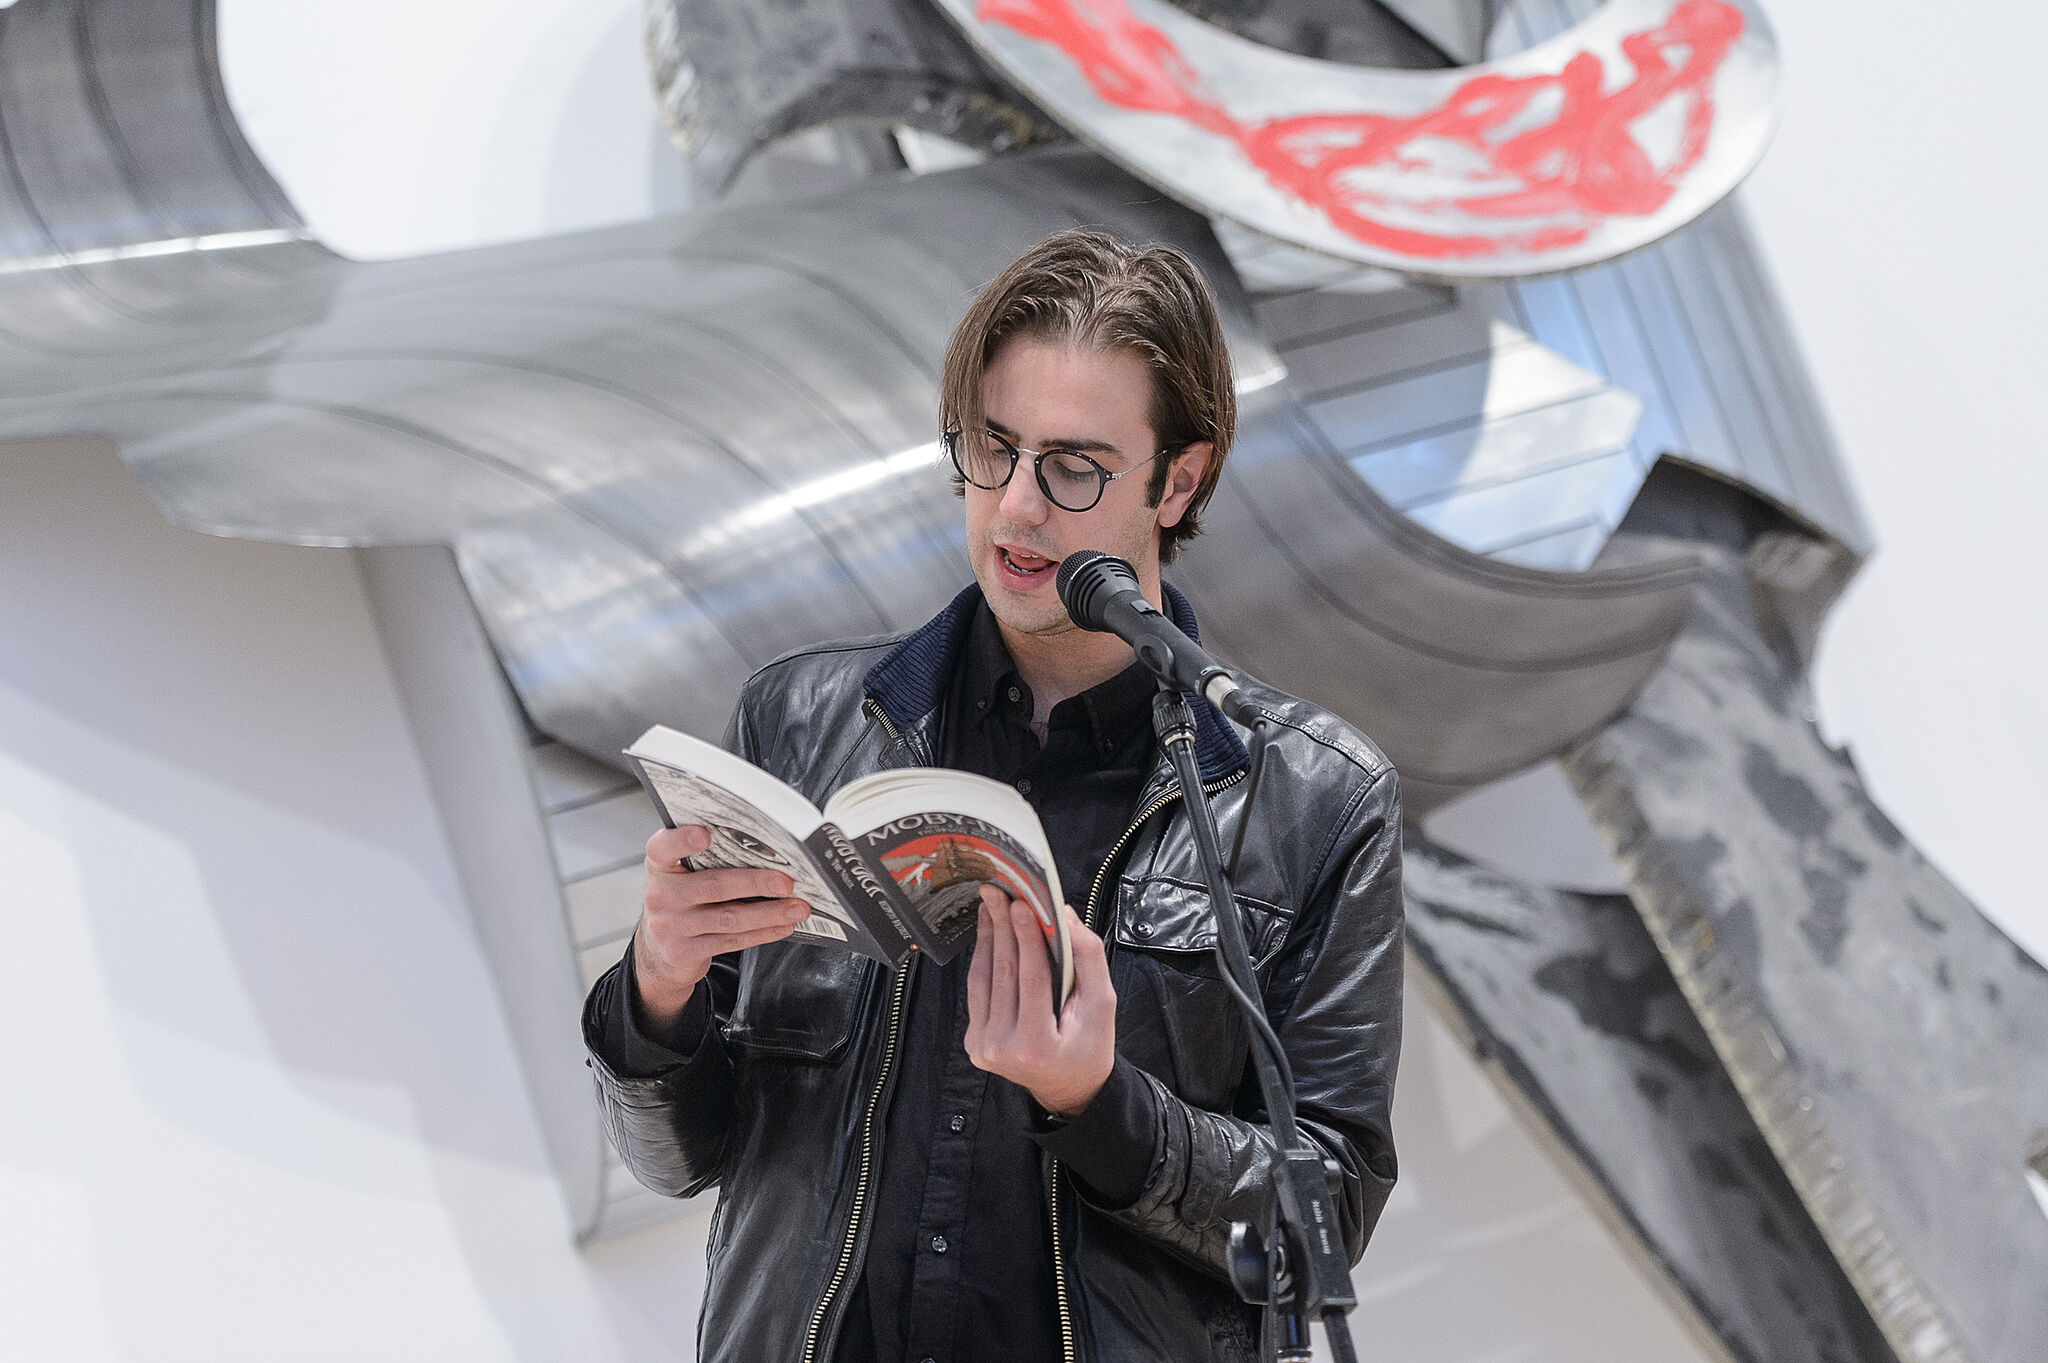 Man with a jacket reading from the book.